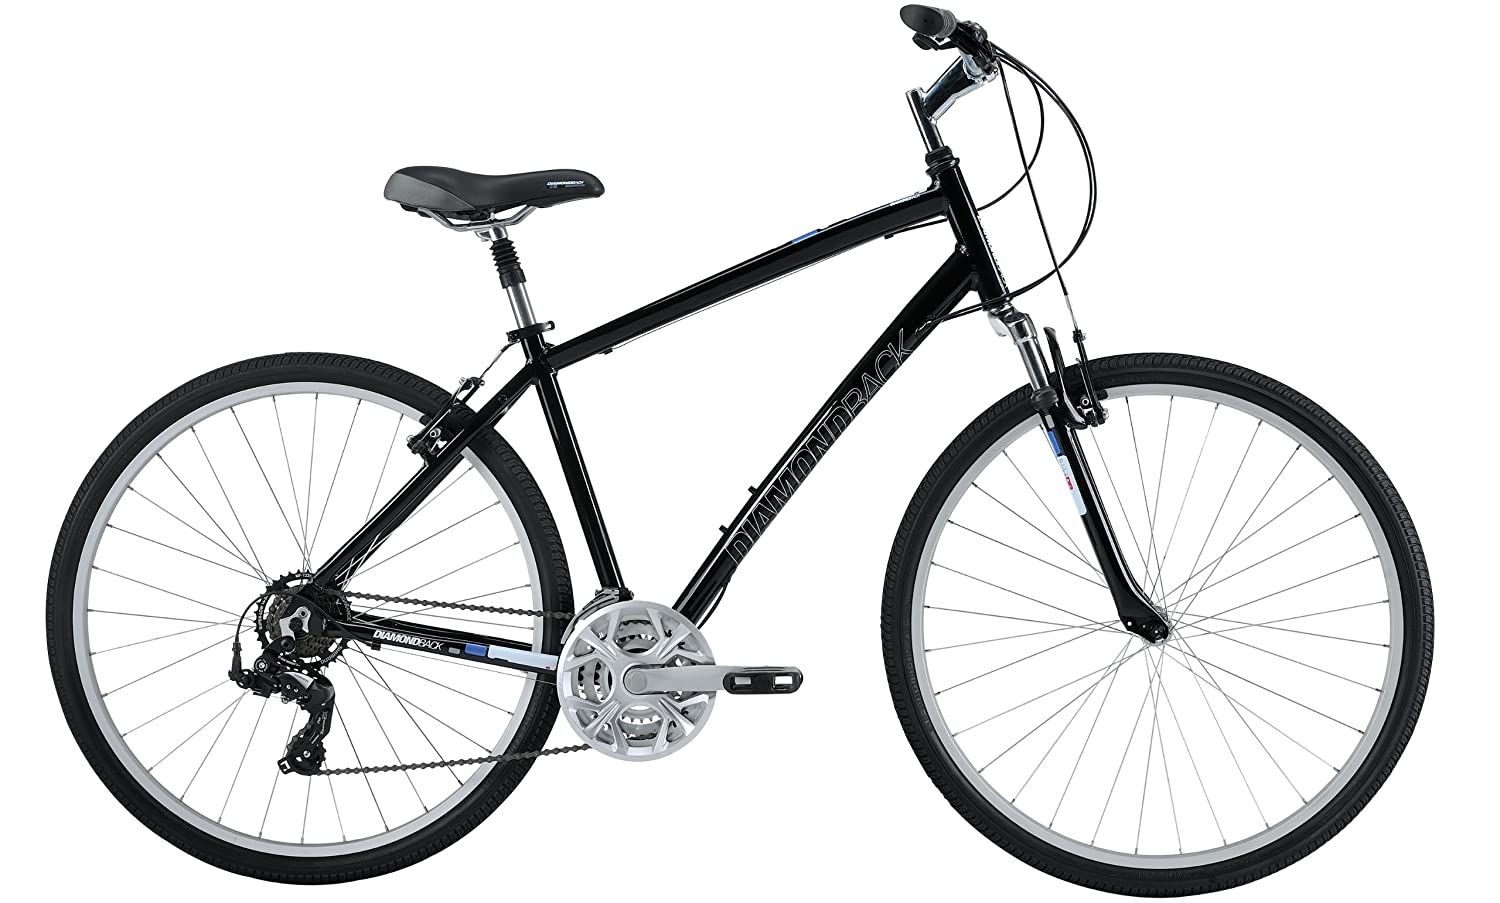 Diamondback Edgewood Hybrid Bikes Reviews Amazon com Diamondback